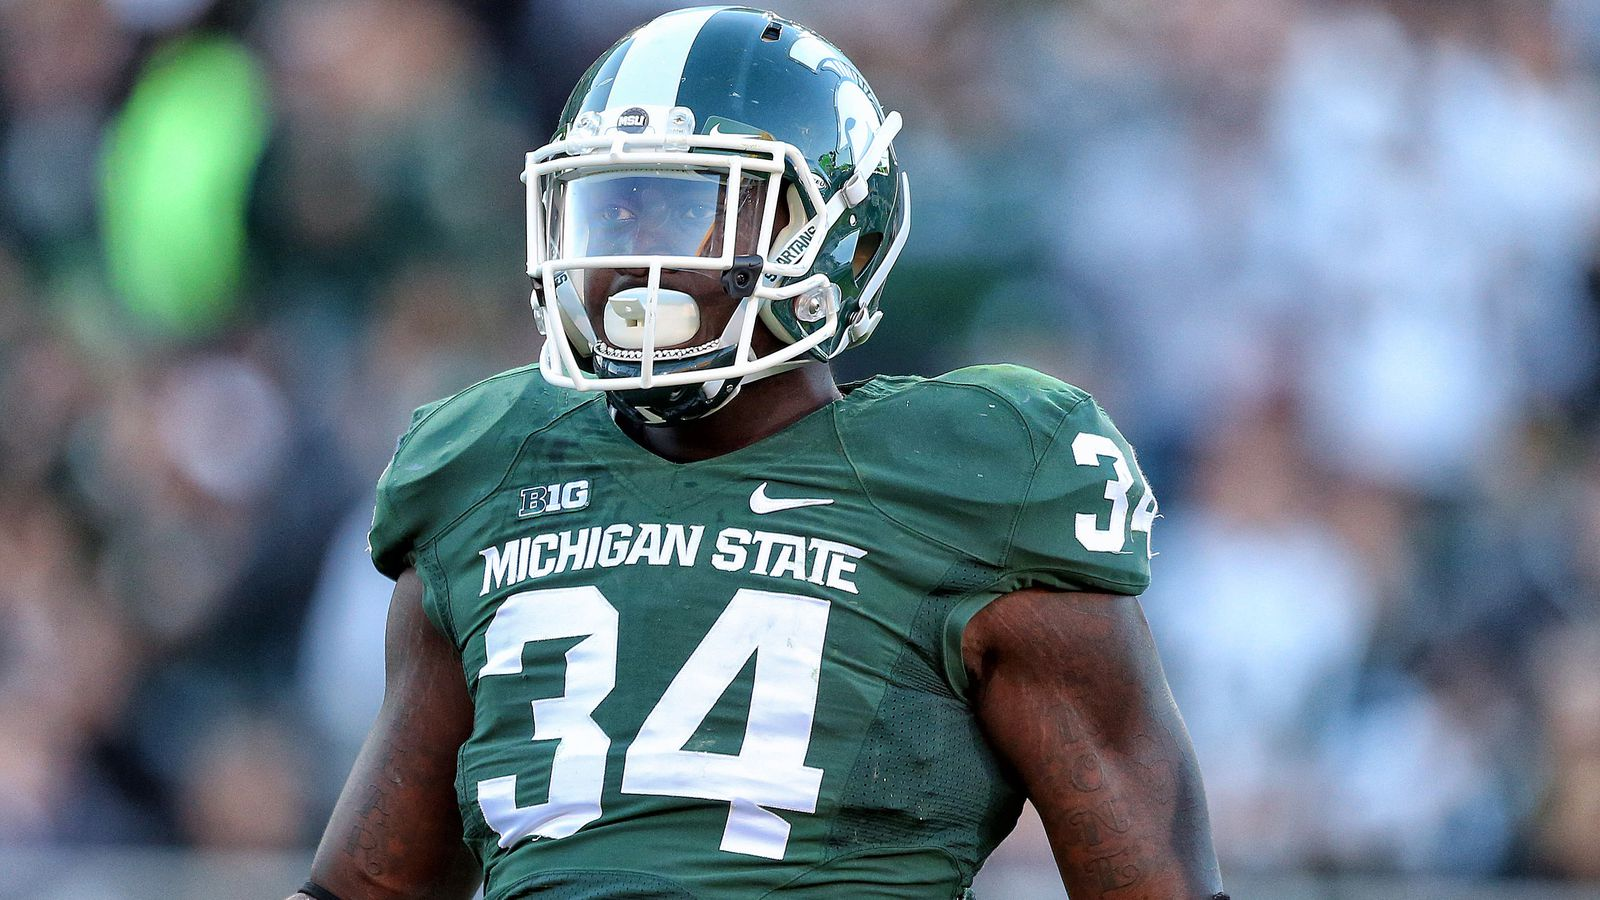 Quick Hits On Who The Jets Have Signed AS UDFA's - Gang Green Nation